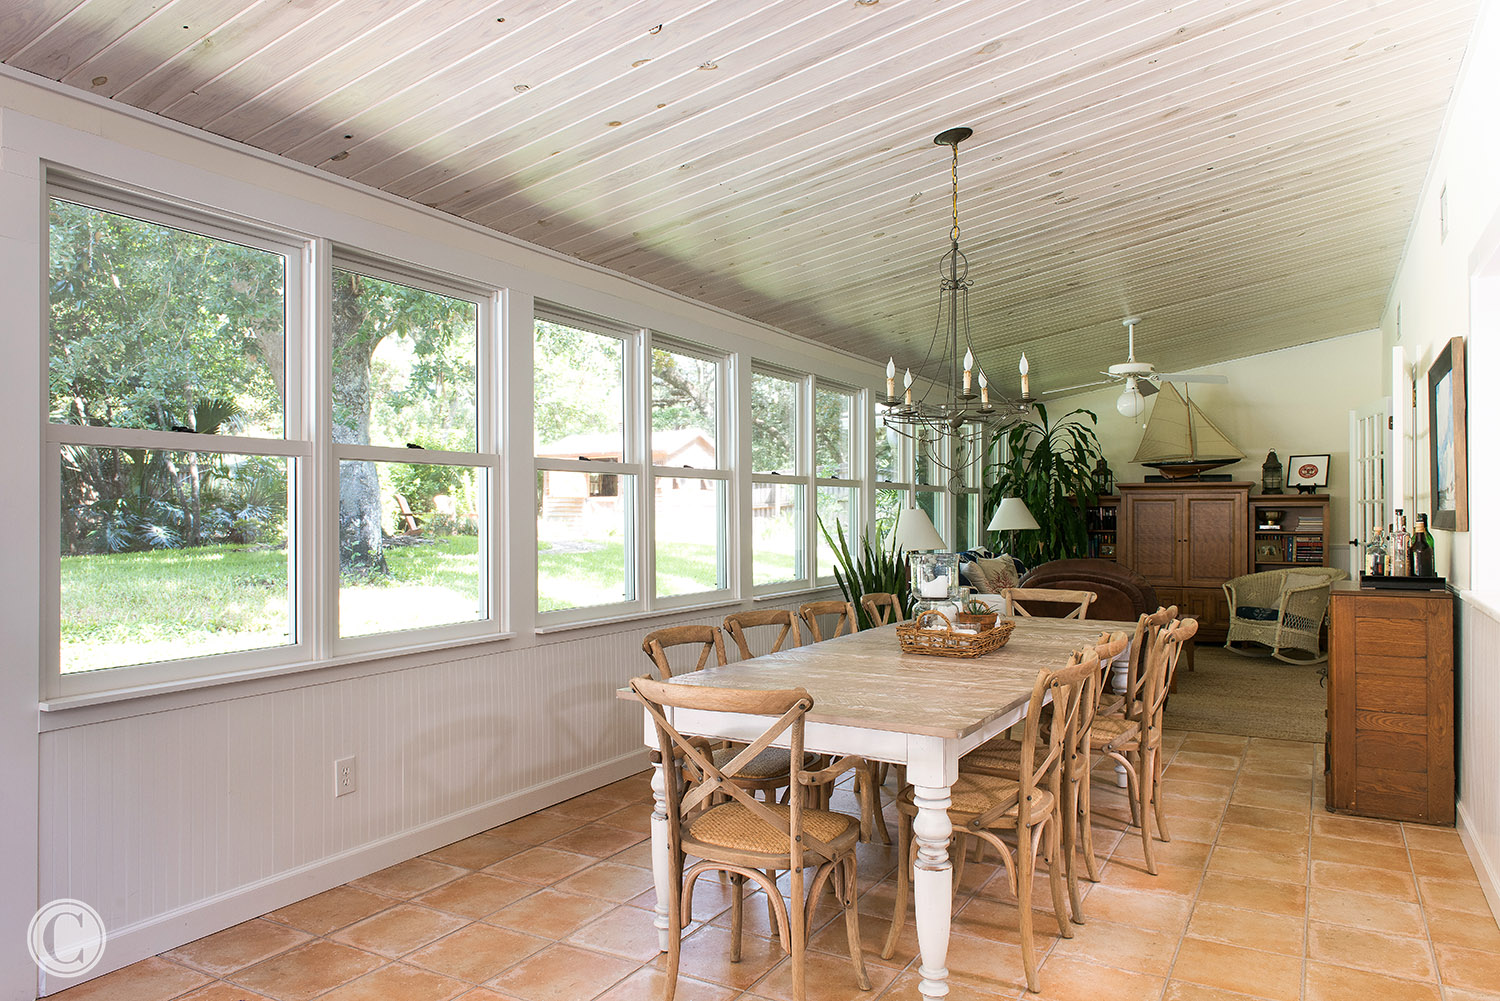 Wood windows, Natural Knotty Pine Tongue and Groove Ceiling, Tile Floor, Atlantic Beach, Florida Home Renovation near Atlantic Beach Country Club, ©Agnes Lopez Photography